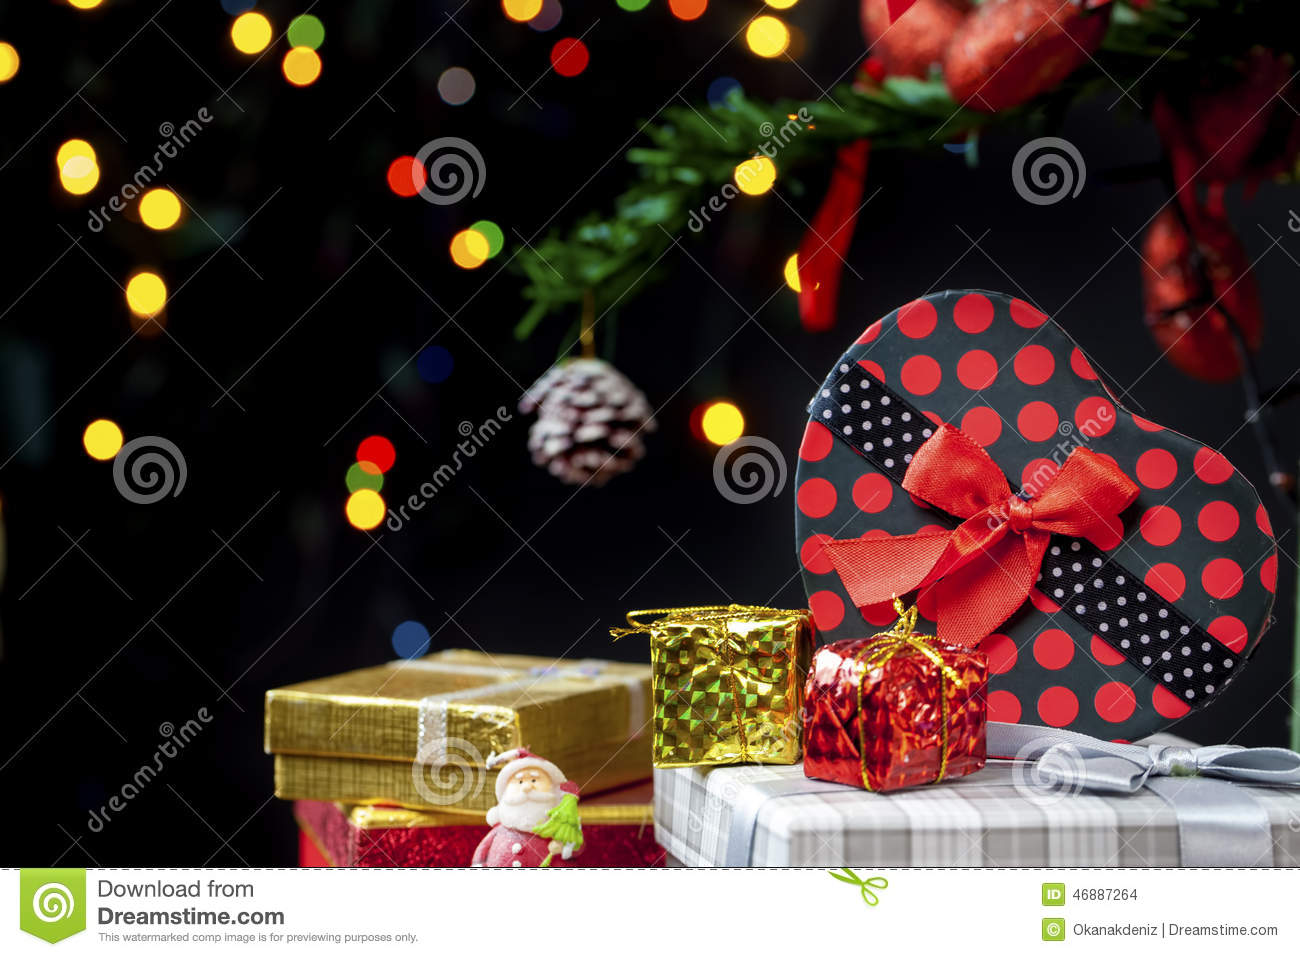 #B9A812 Christmas New Year Decoration Stock Photo Image: 46887264 6361 décoration noel commerce 1300x957 px @ aertt.com